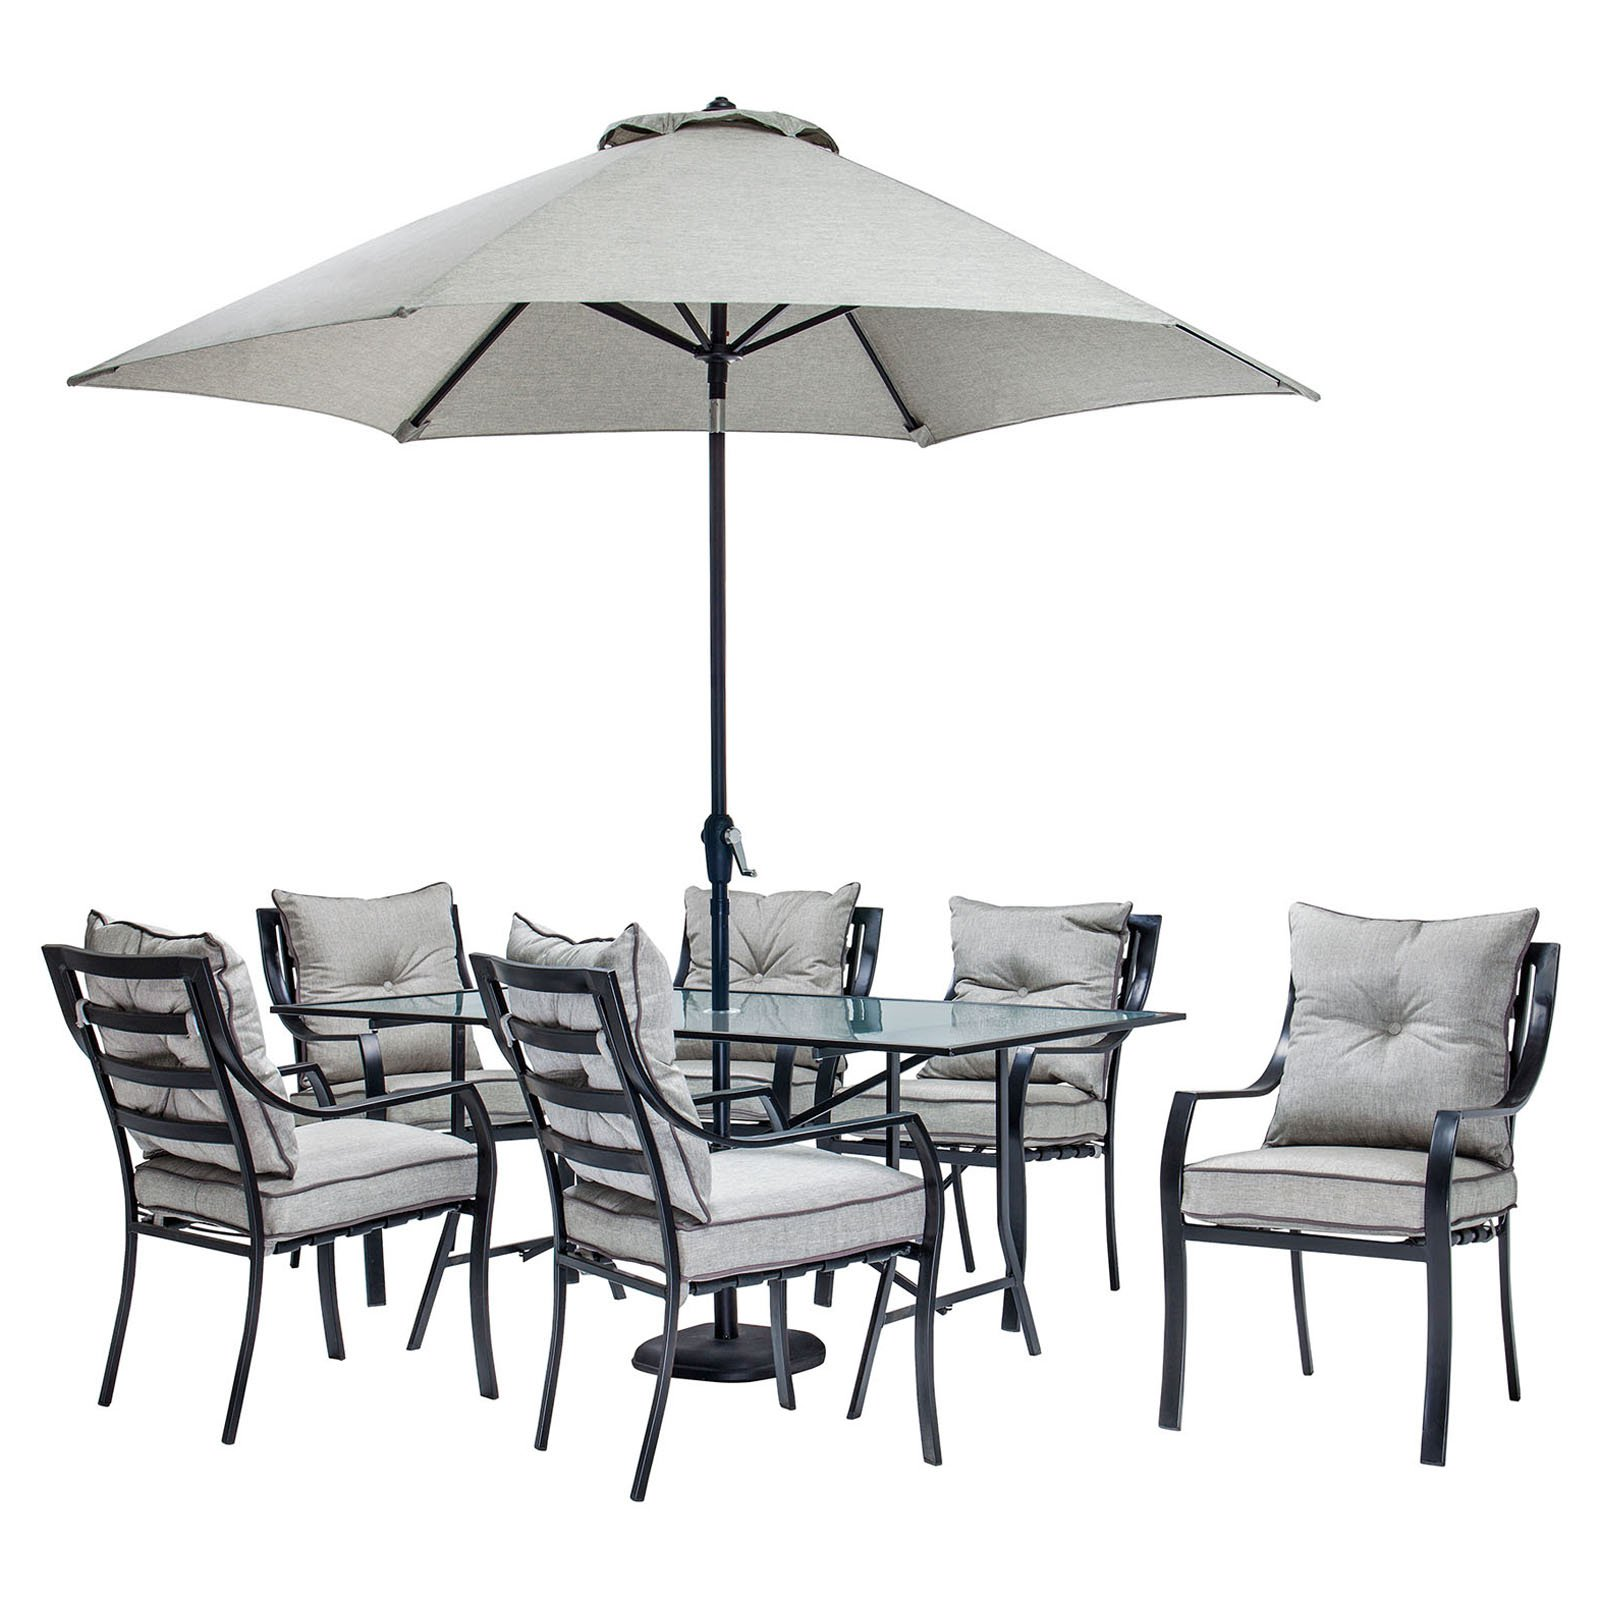 Hanover Lavallette 7 Piece Outdoor Dining Set with Table Umbrella